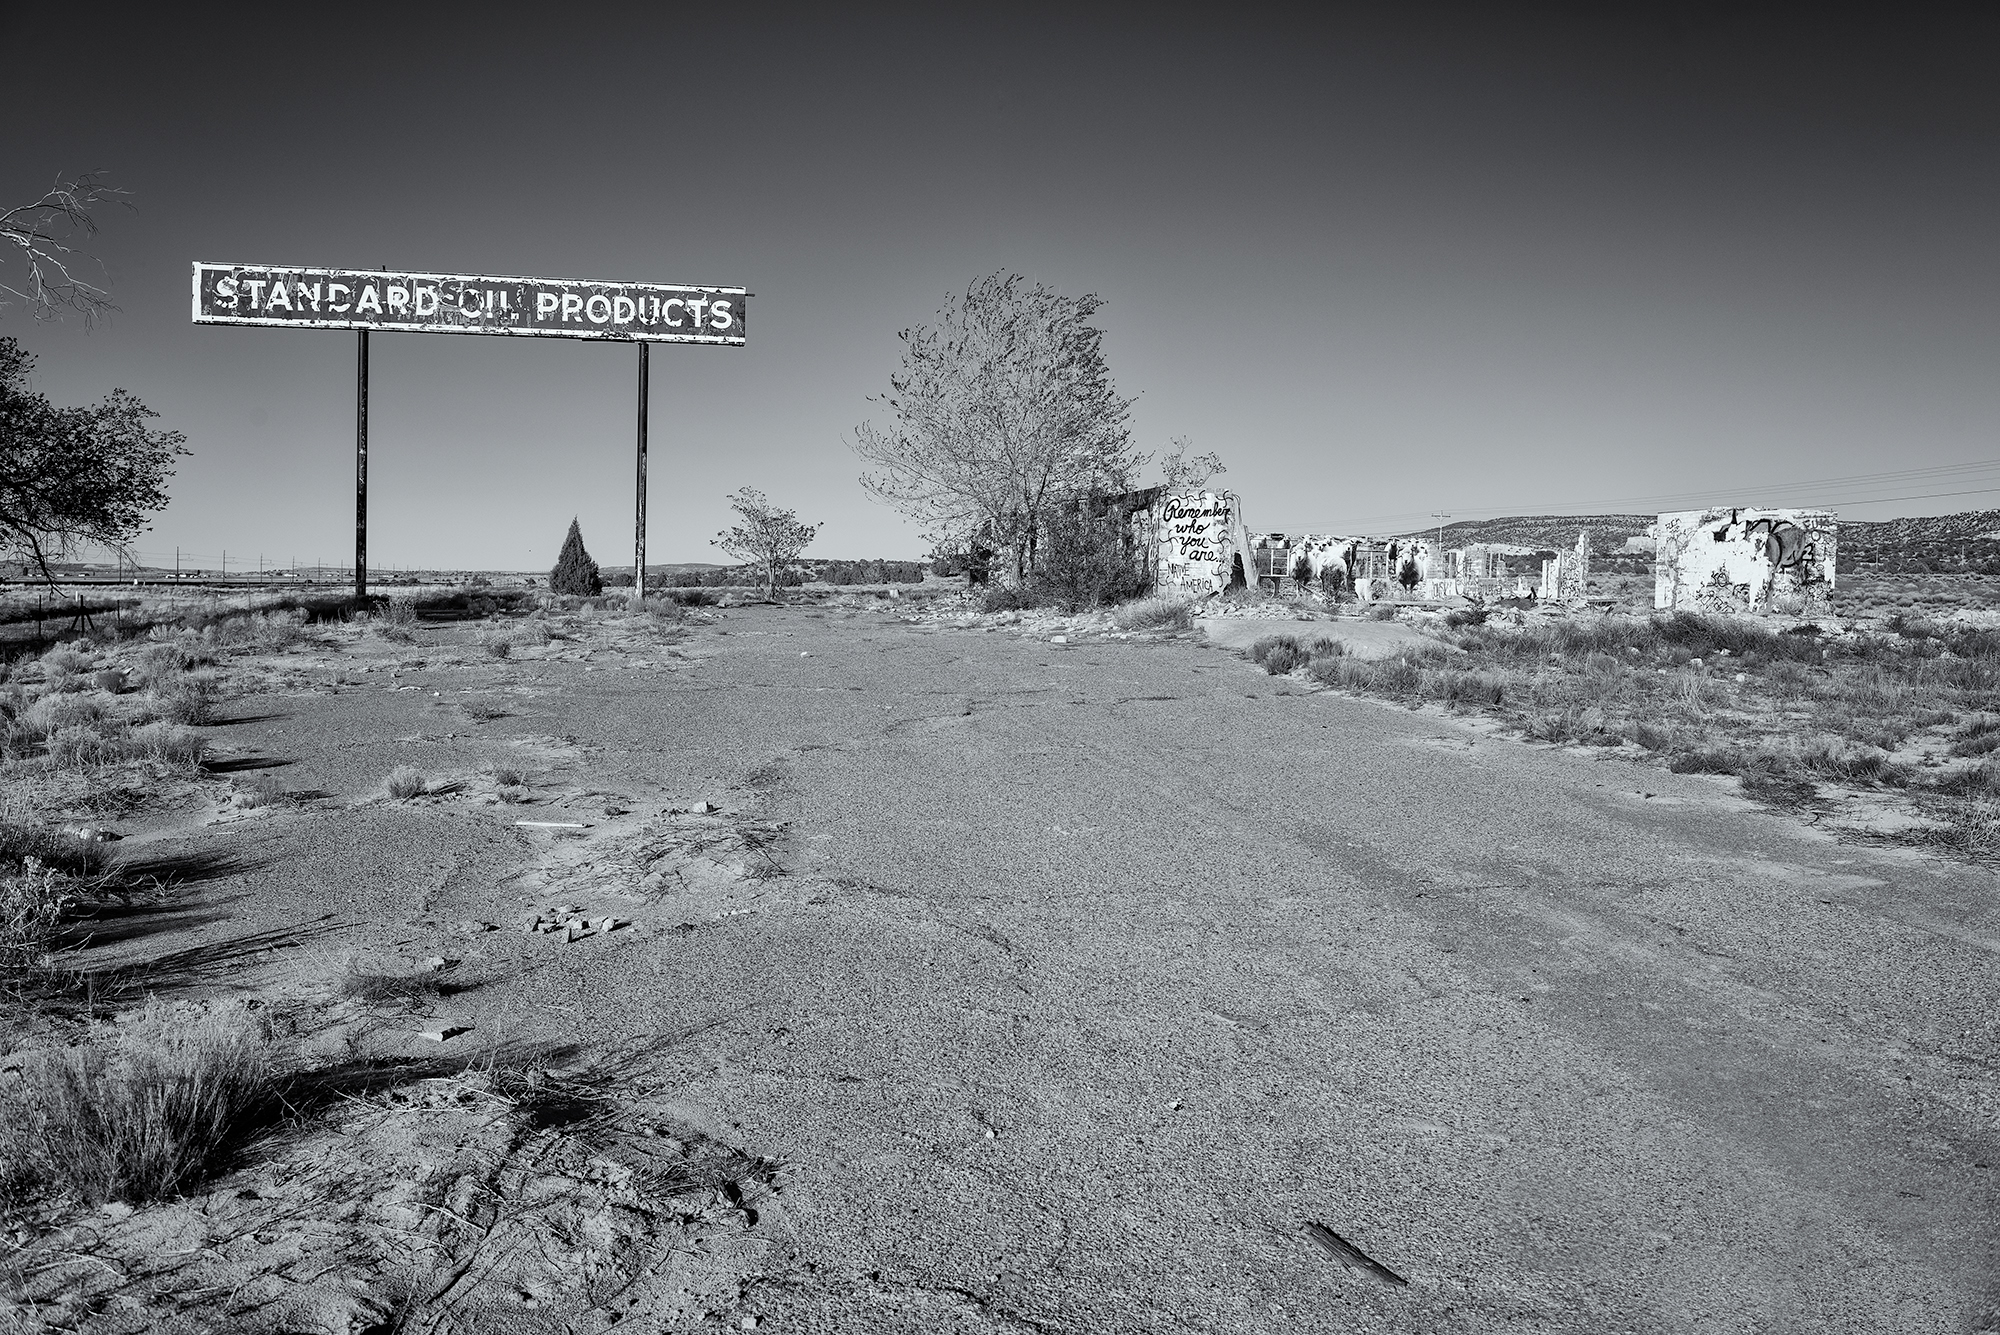 Cow Springs Station, #1. Cow Springs, Navajo Nation, Arizona, 2016